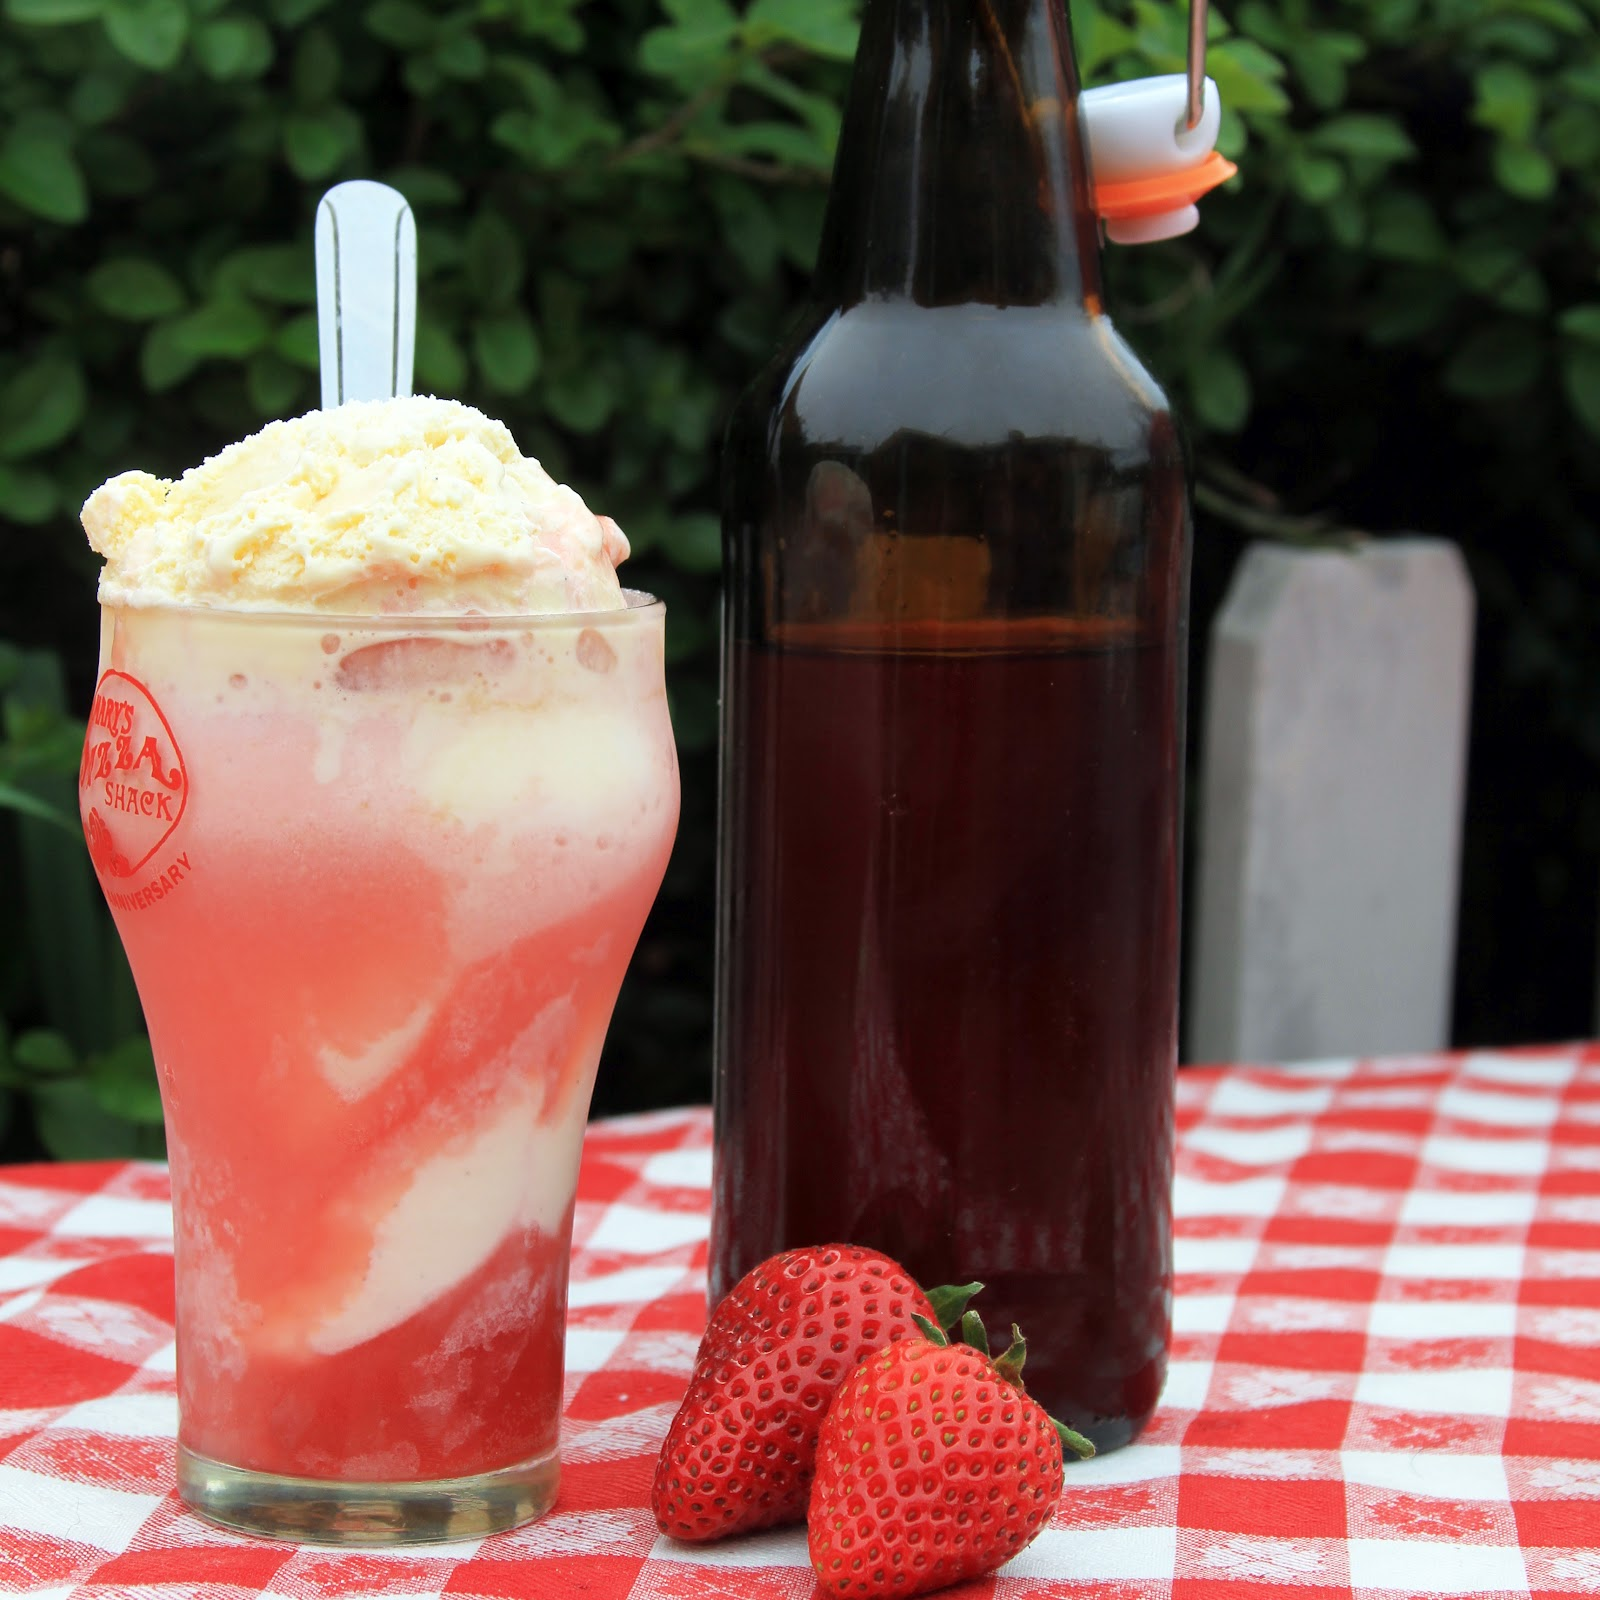 Wildness: Strawberry Soda, the homemade lacto-fermented way!